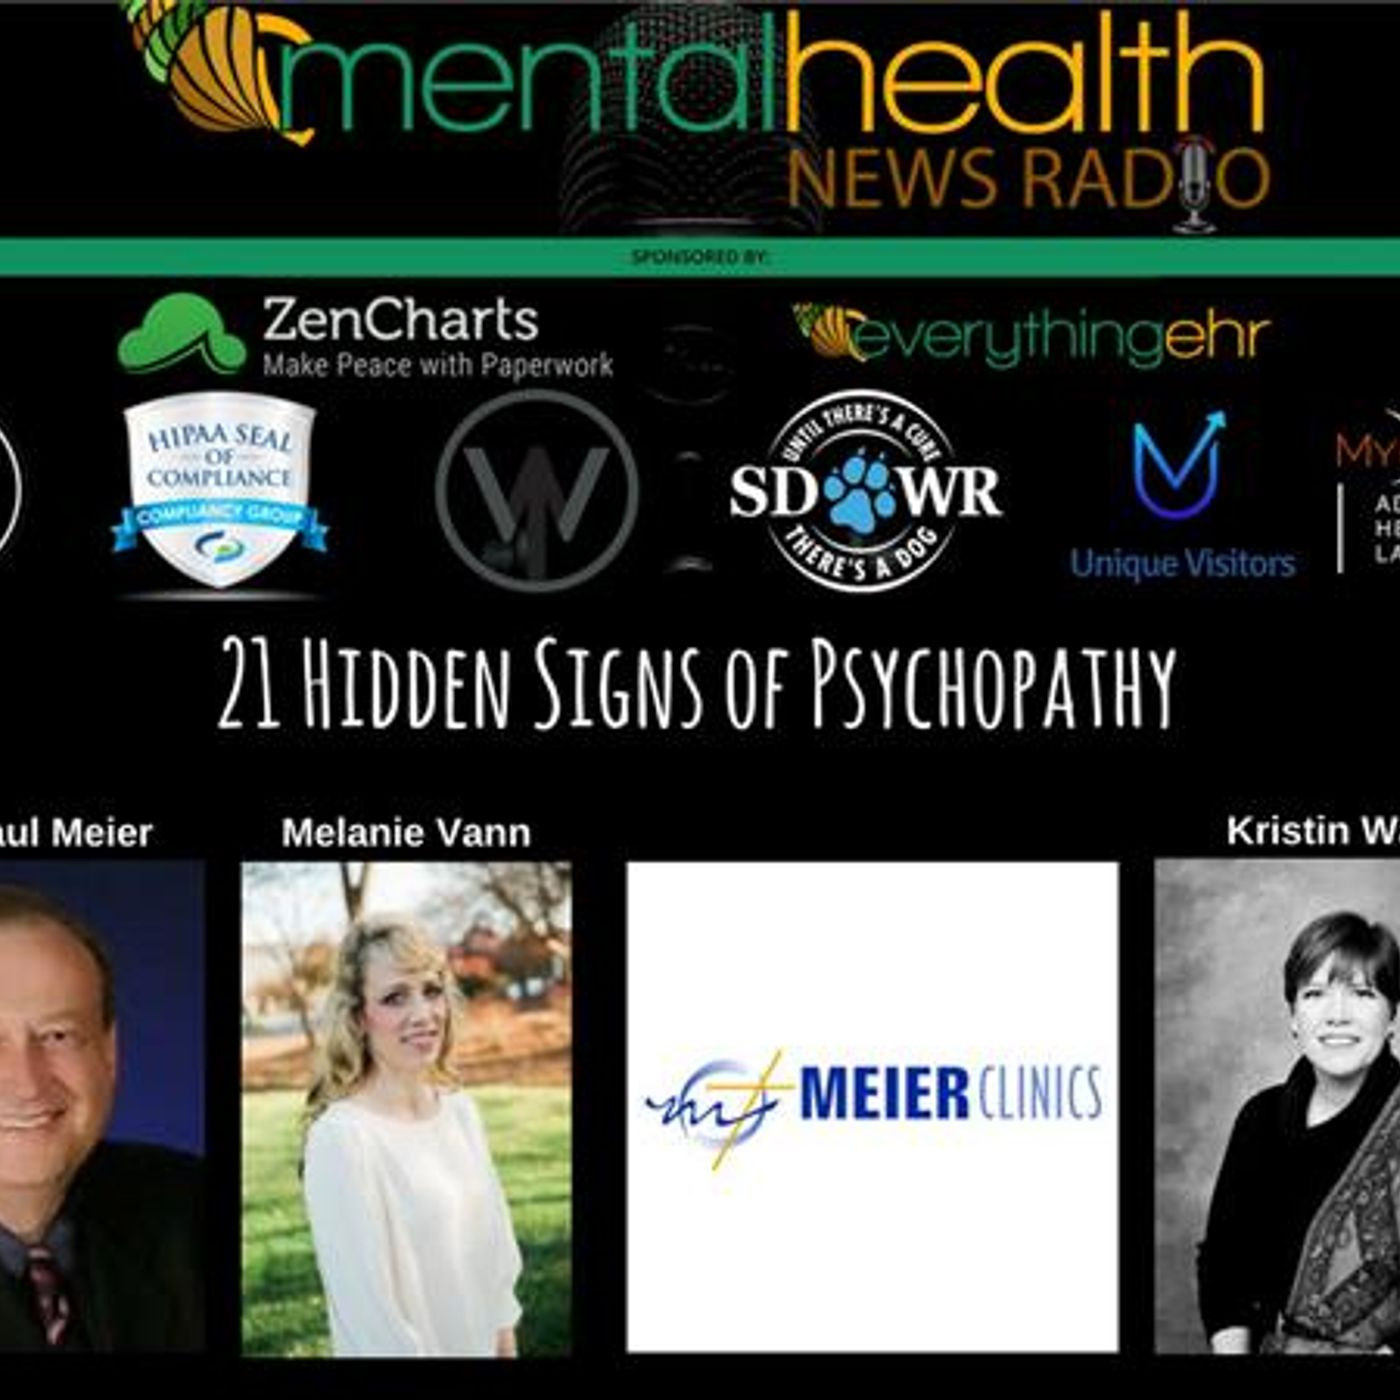 Mental Health News Radio - Round Table Discussions with Dr. Paul Meier 21 Hidden Signs of Psychopathy